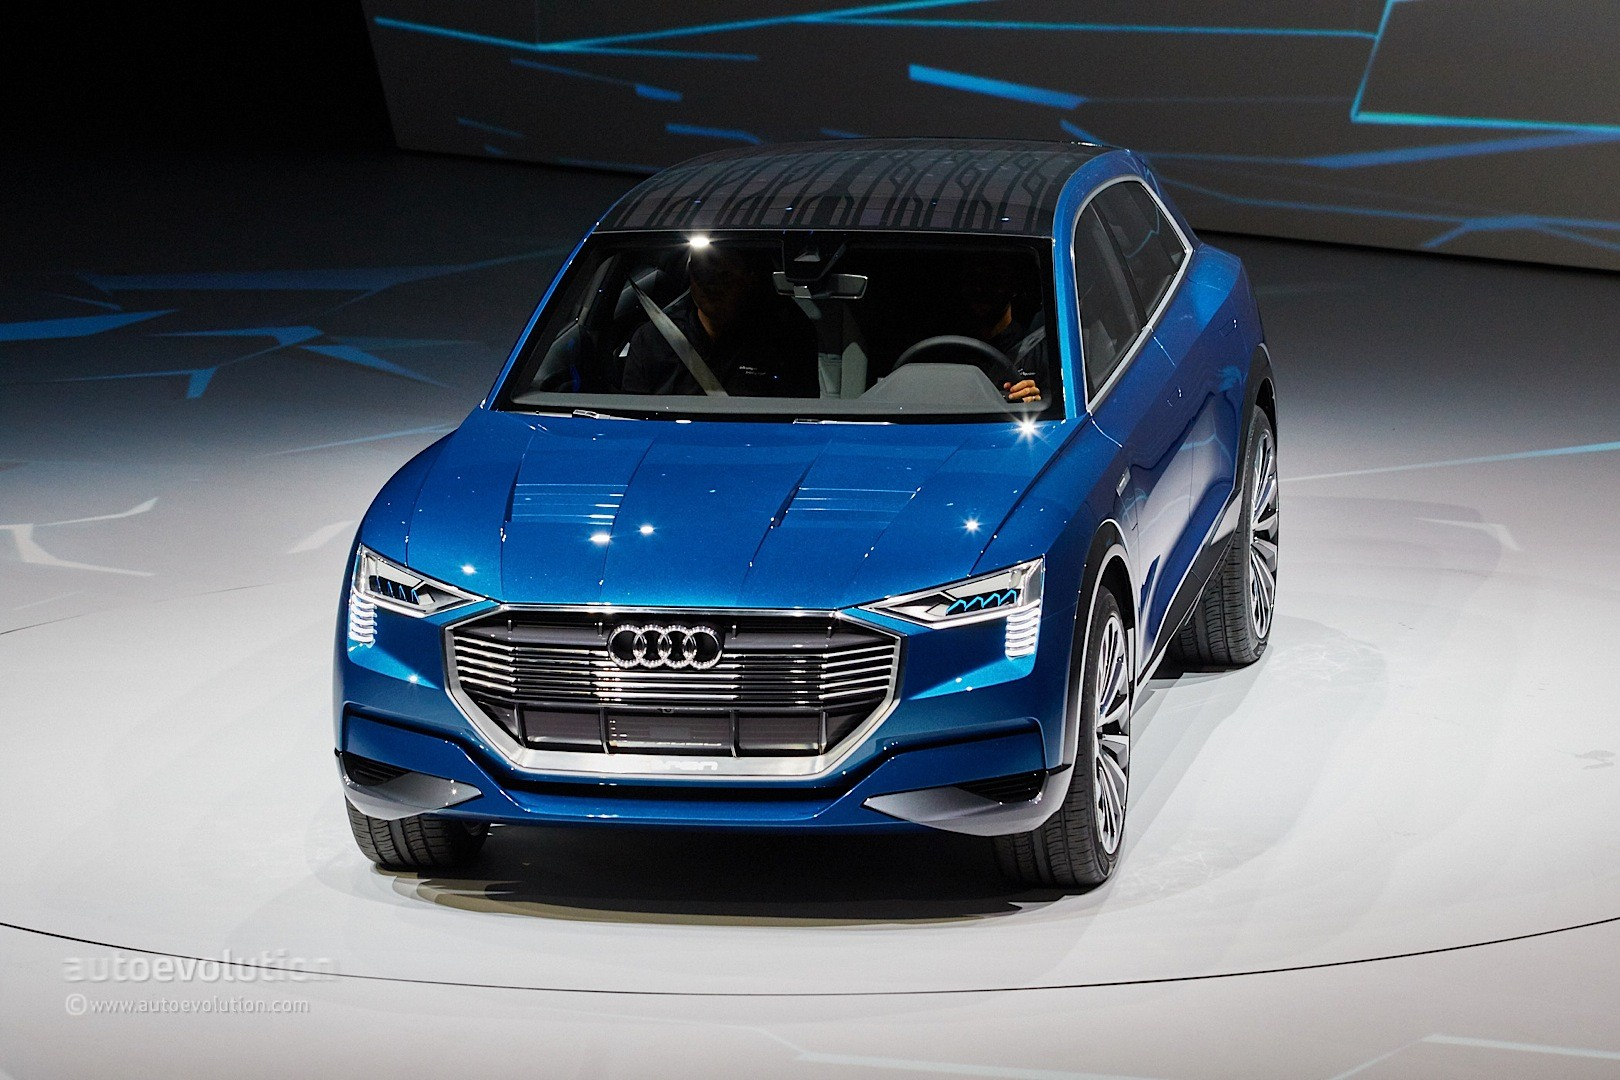 Reservations Open In Norway For The 2018 Audi e-tron ...